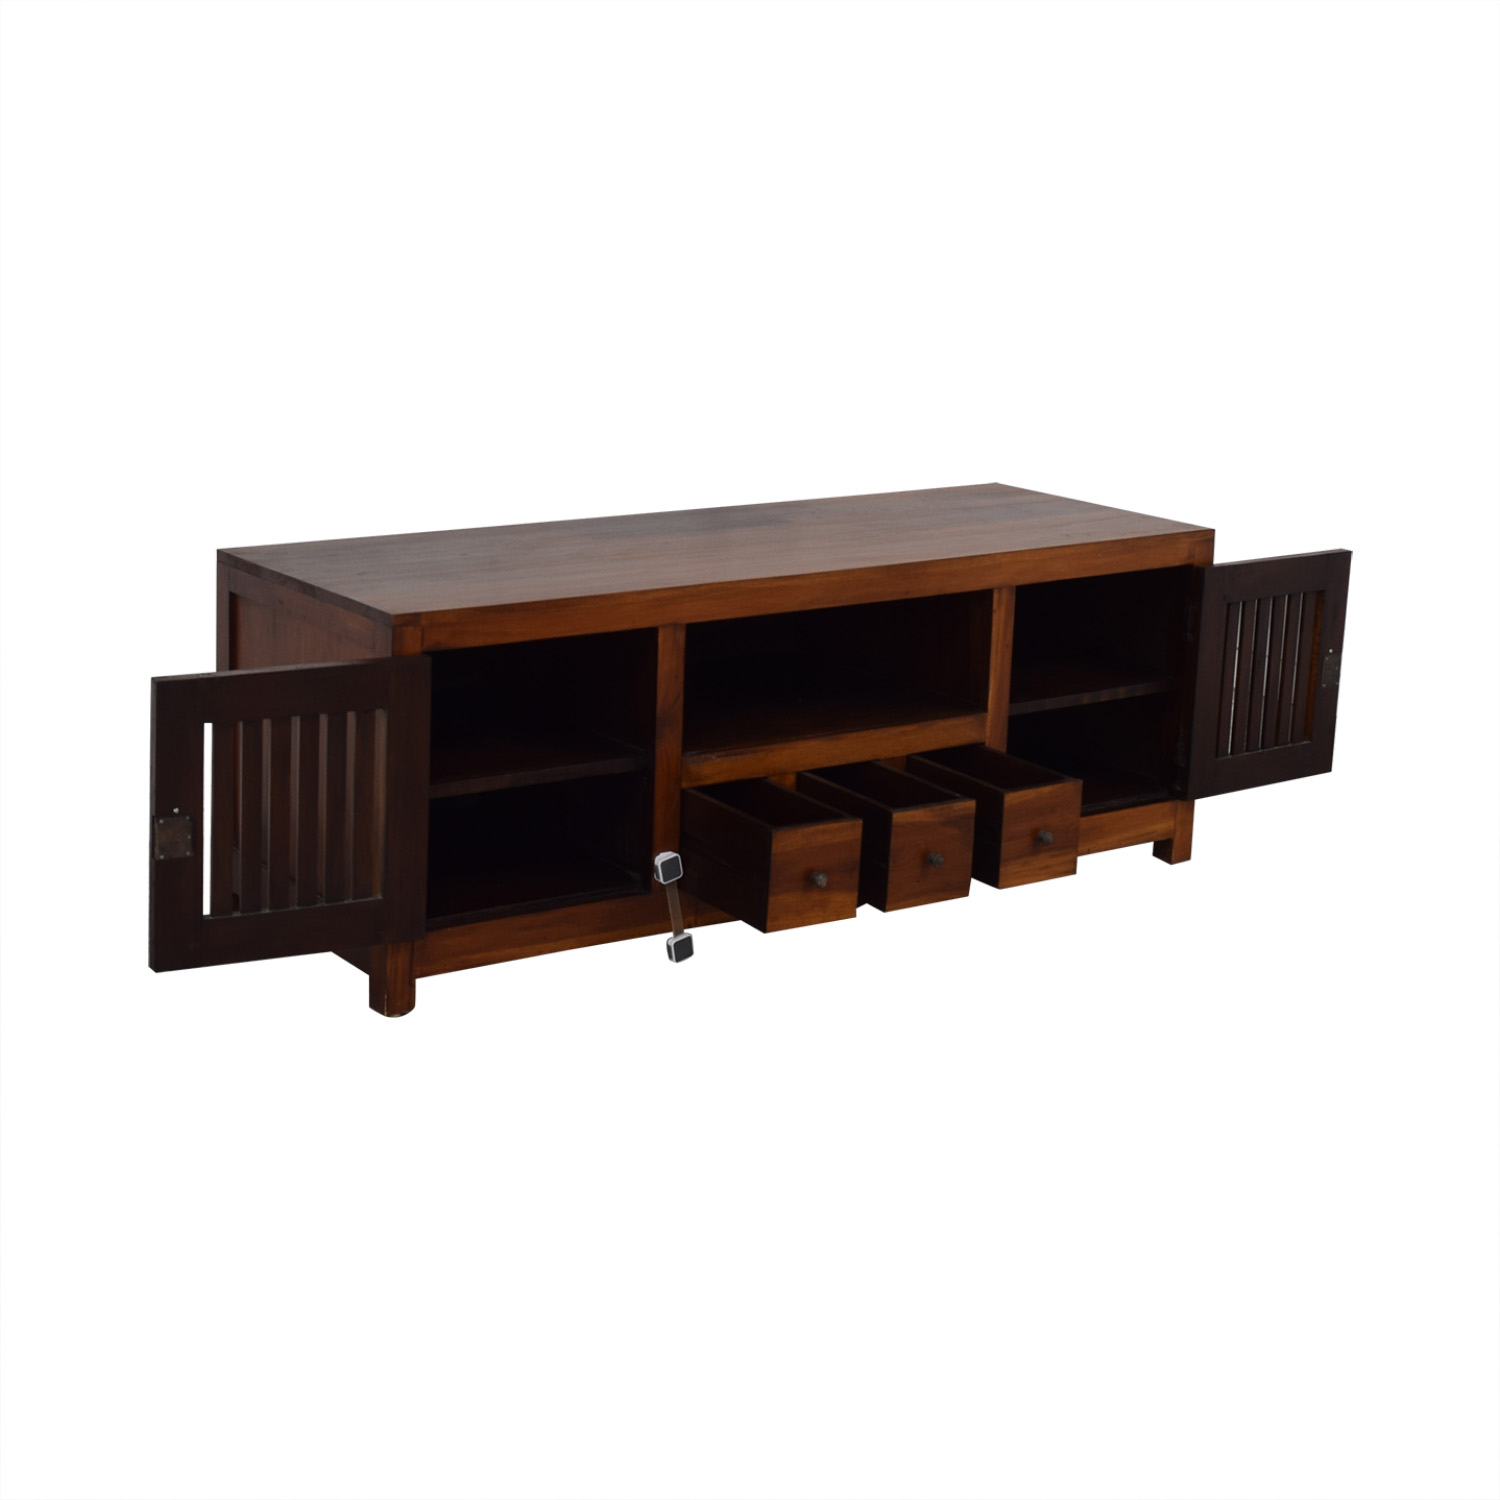 Teak Entertainment Center / Storage